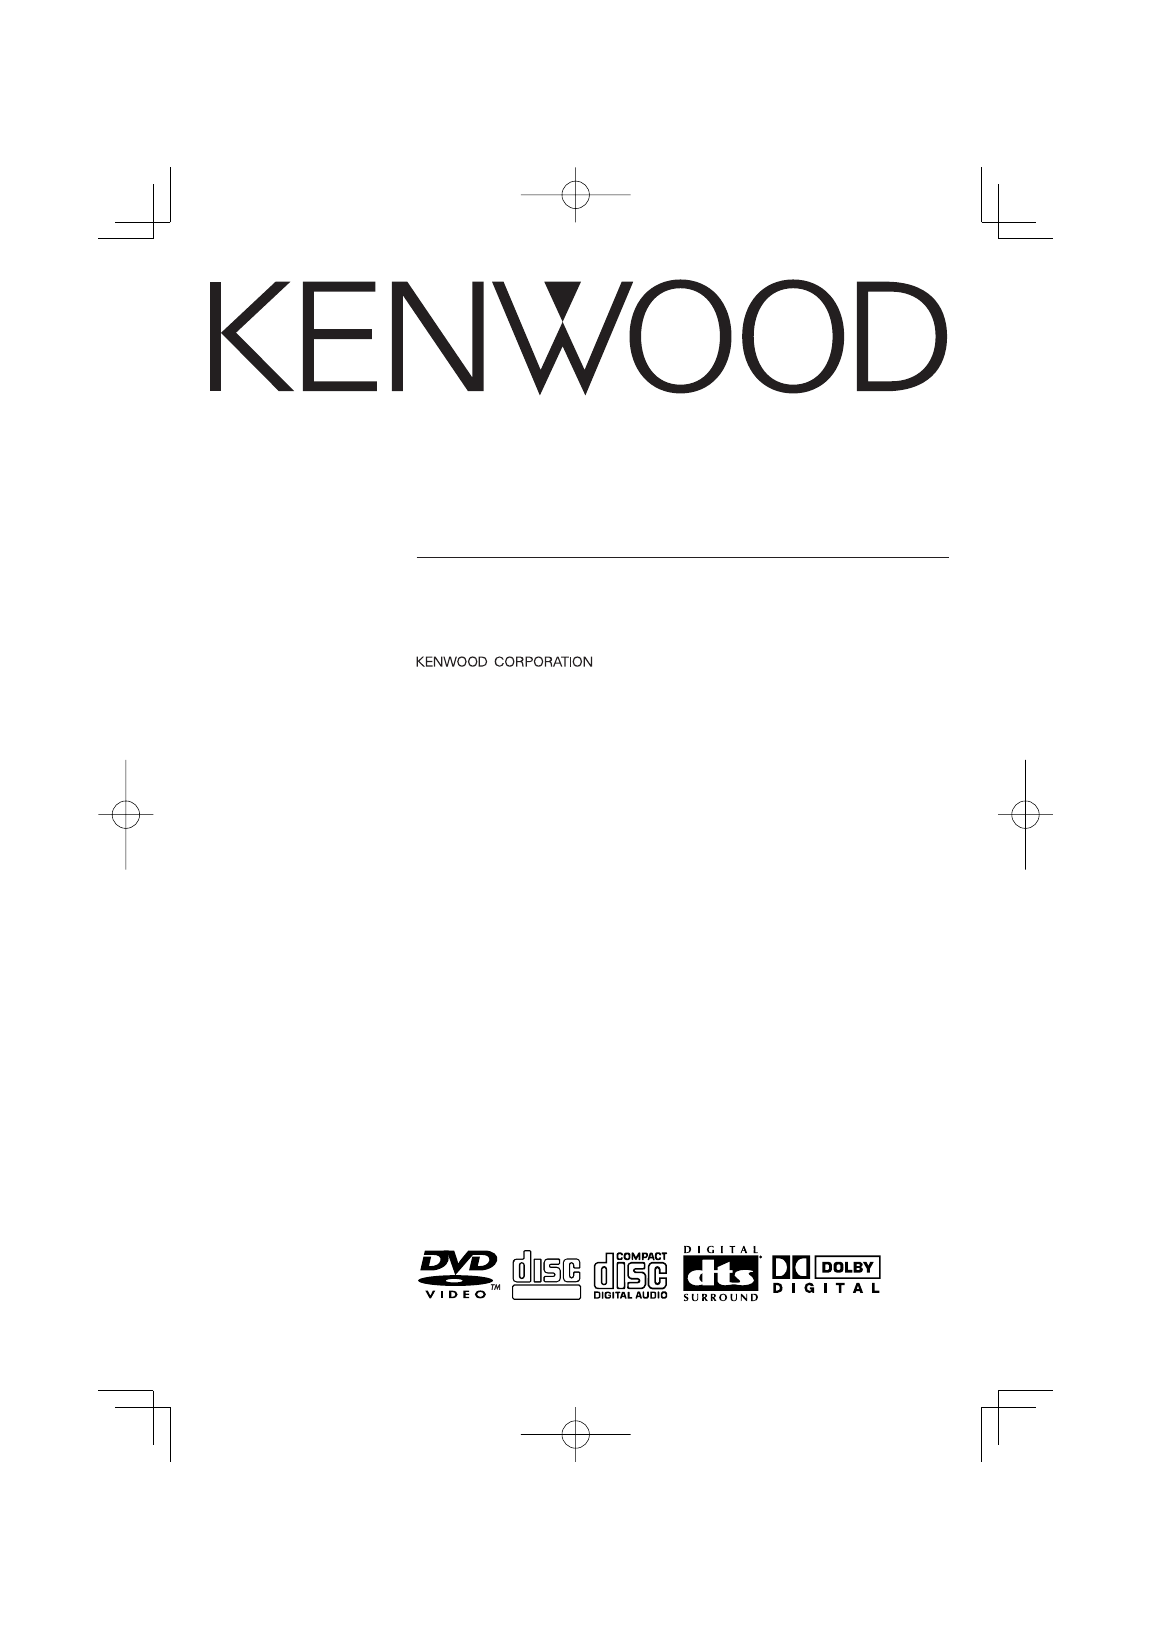 Service Manual - Car Video - Kenwood KDV-MP765, KDV-